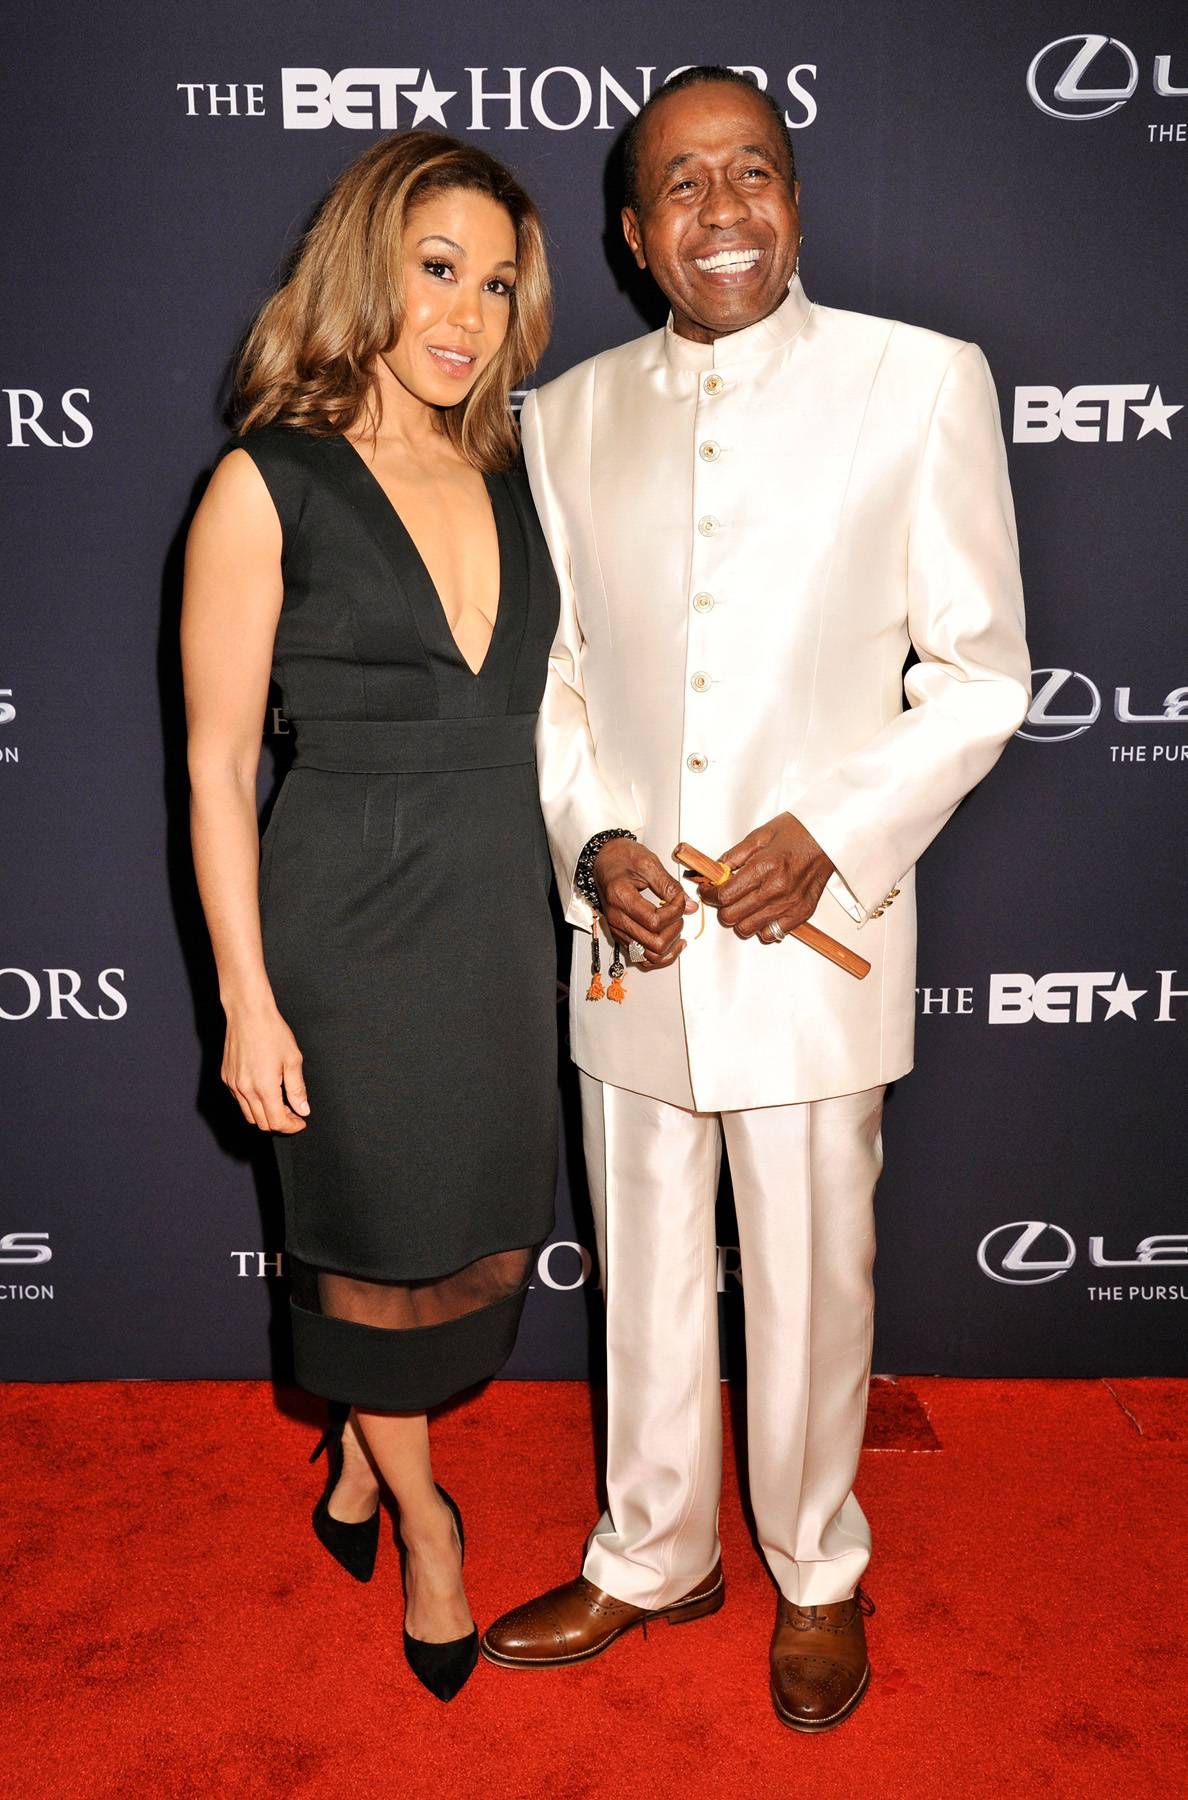 All Smiles  - Kabara Vereen and actor Ben Vereen hit the red carpet showing off their bright smiles for the camera. (Photo: Kris Connor/BET/Getty Images for BET)